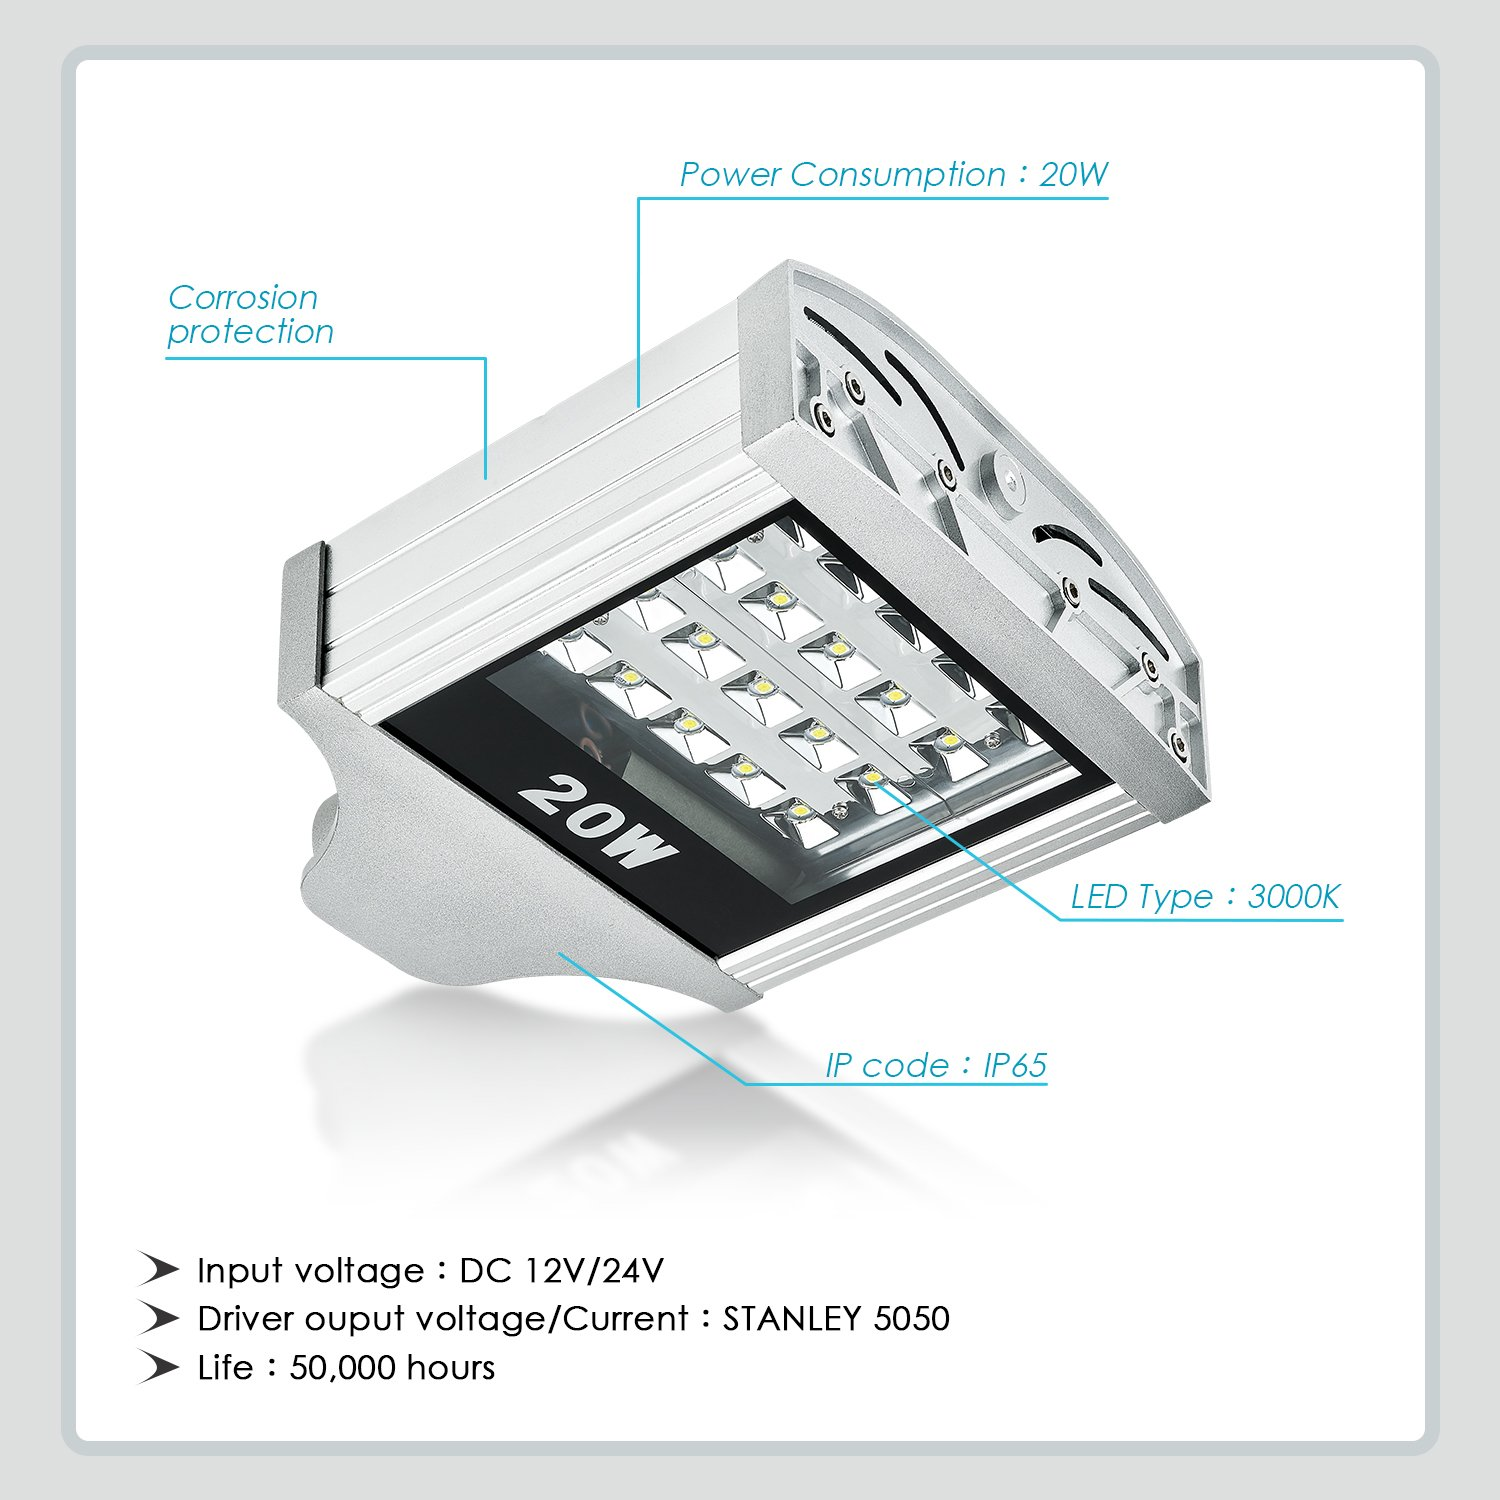 20W Street Area Light Japan Stanley patent SMD 5050 LED Daylight 3000K Bright White Light with Free smartphone Bluetooth remote or cloud remote Easy Mounts Add Automaxx 1400lm LED Parking Lot Lights